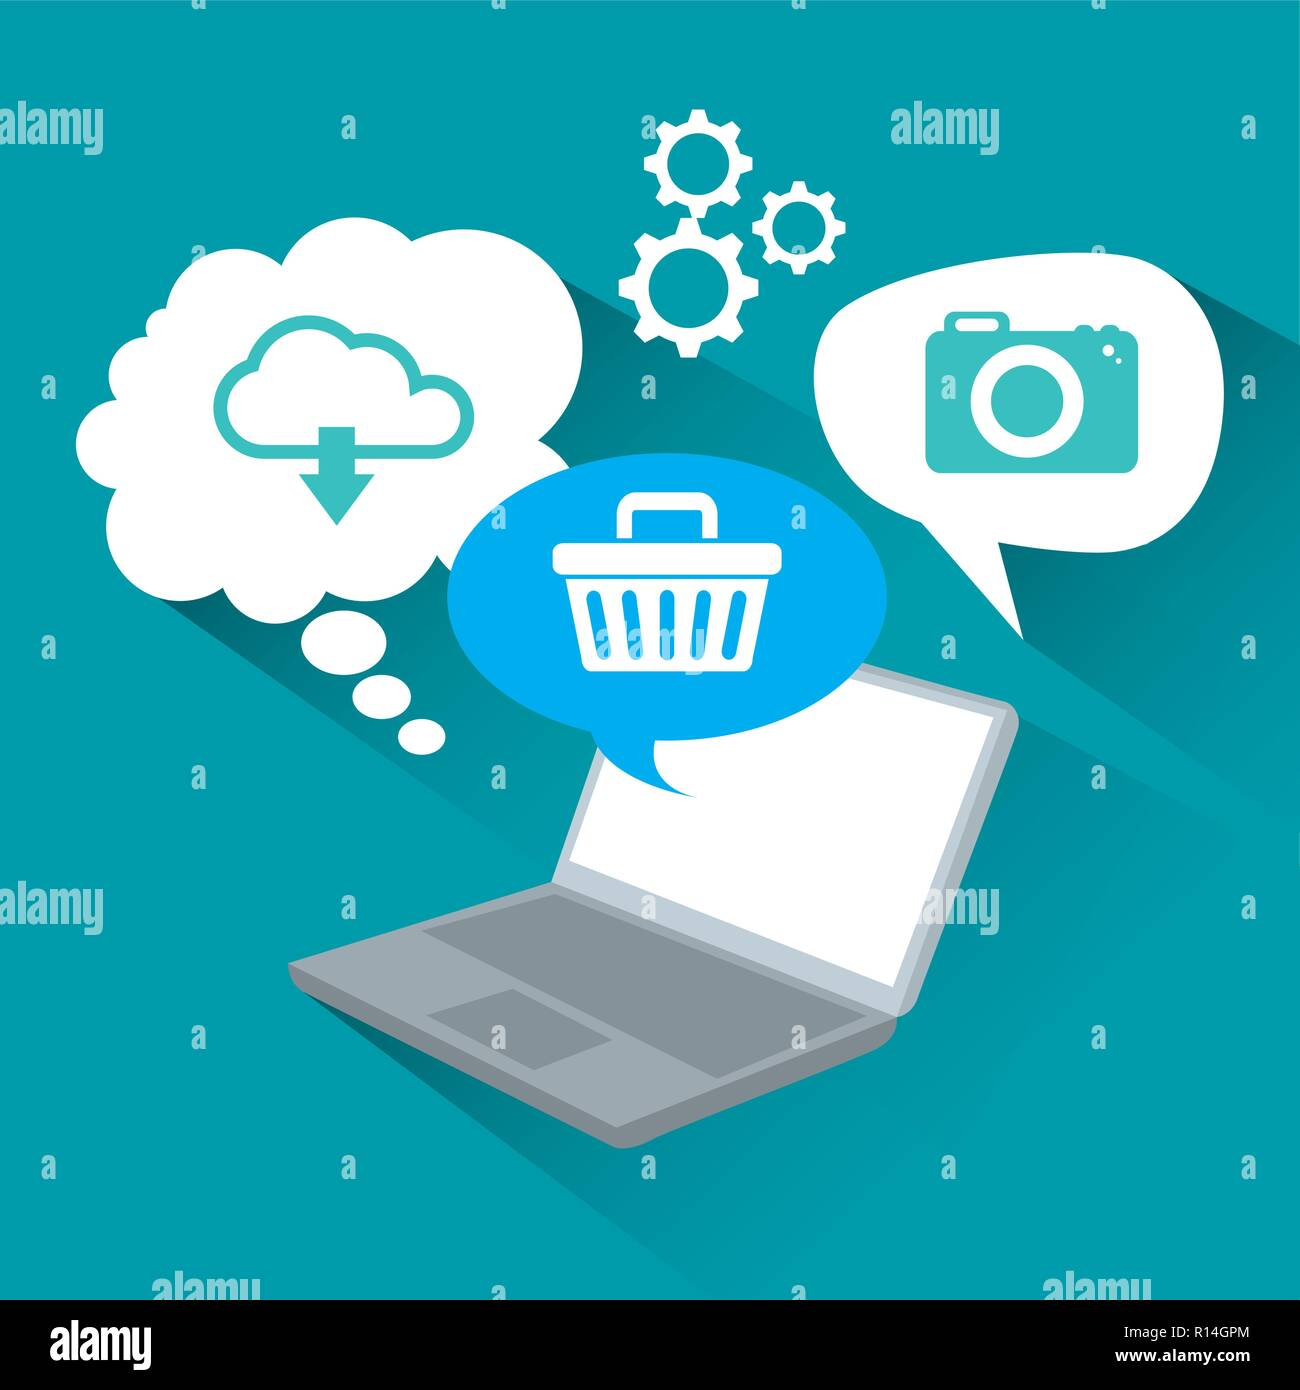 Apps Download Stock Photos & Apps Download Stock Images - Alamy